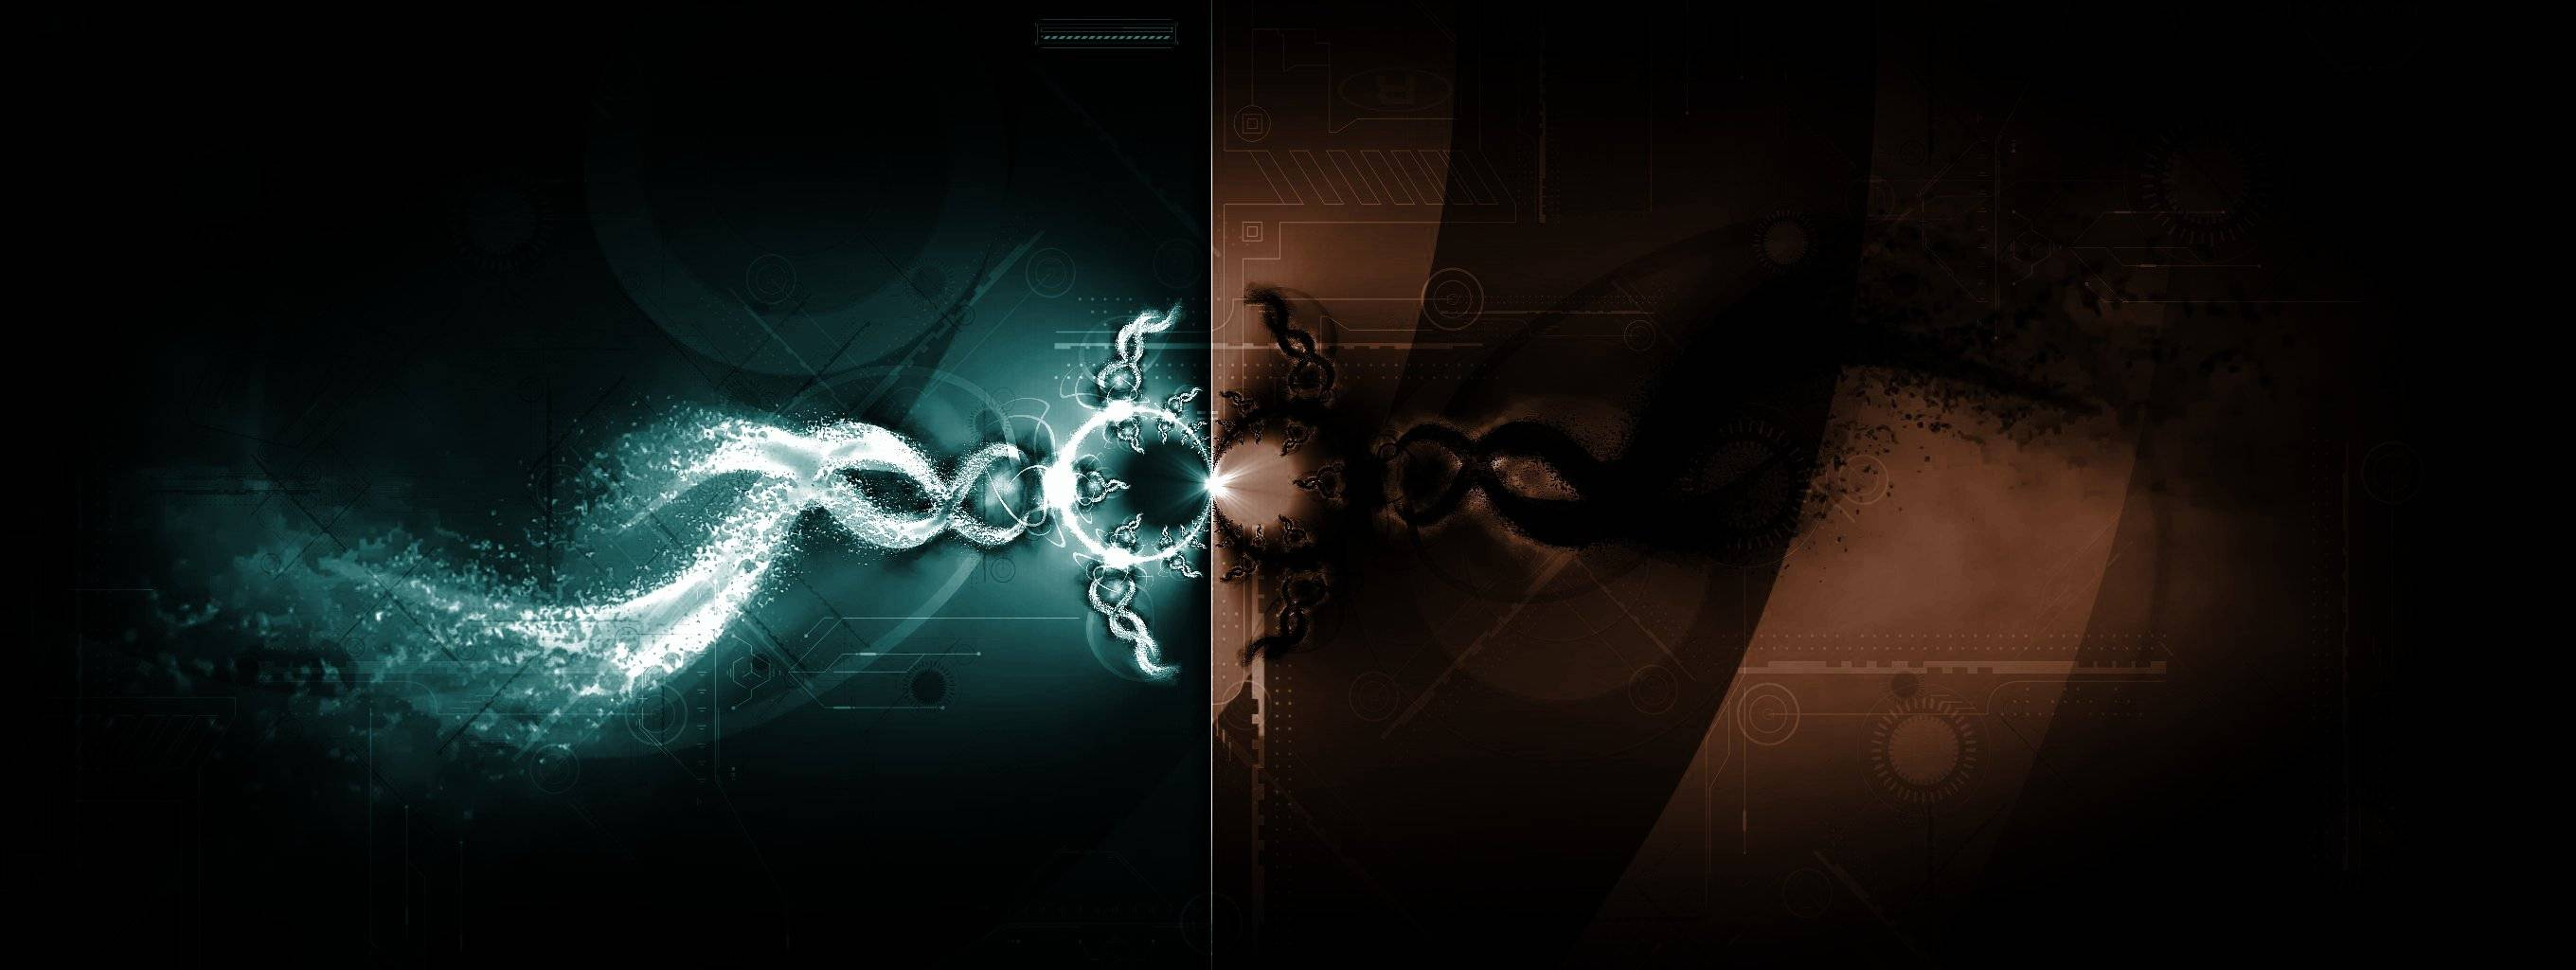 Cool Dual Monitor Wallpapers